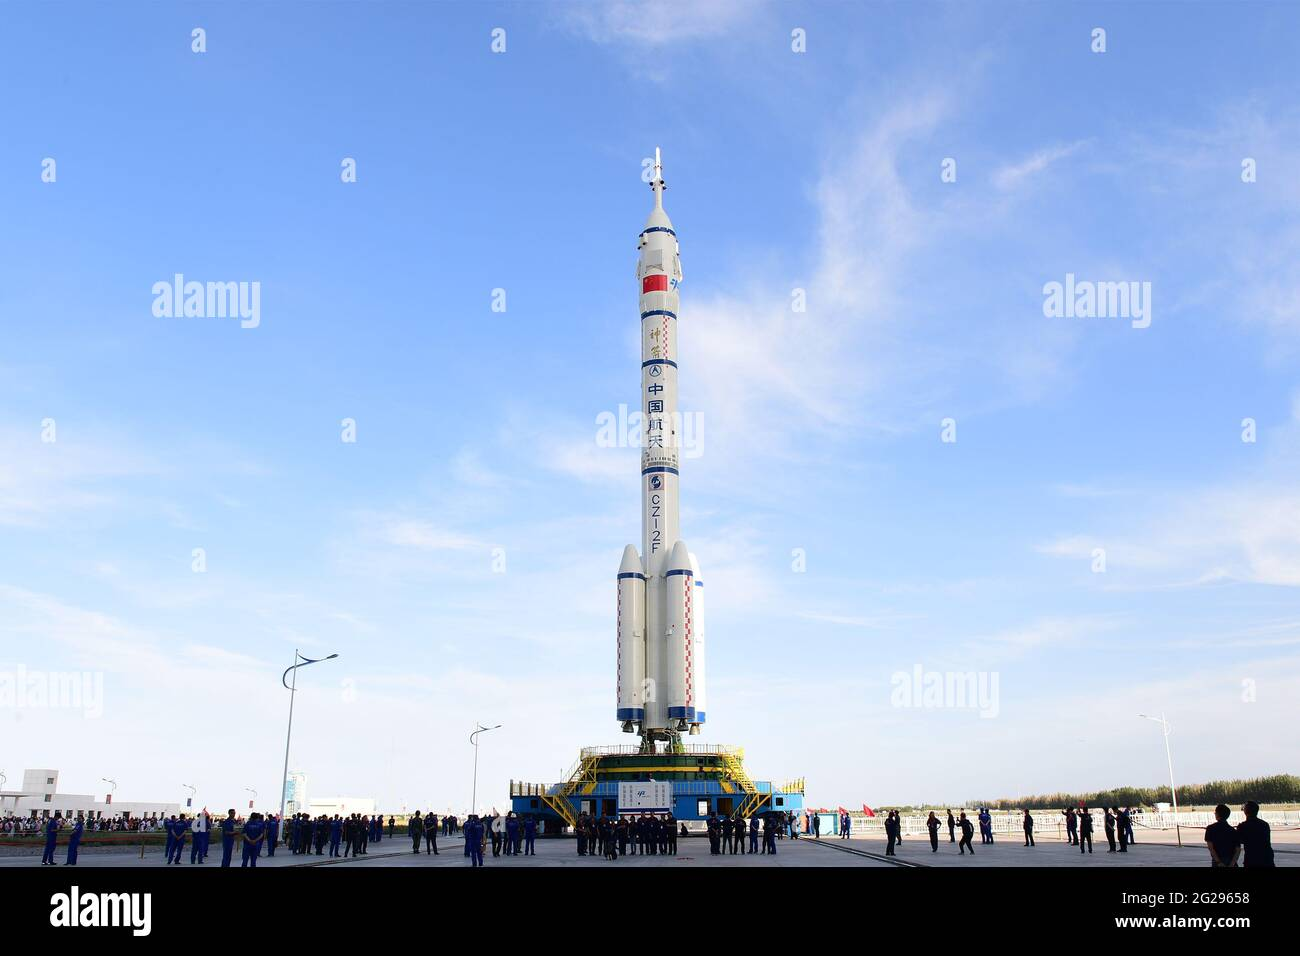 (210609) -- JIUQUAN, June 9, 2021 (Xinhua) -- The combination of the Shenzhou-12 manned spaceship and a Long March-2F carrier rocket is being transferred to the launching area of Jiuquan Satellite Launch Center in northwest China, June 9, 2021. The combination of the Shenzhou-12 manned spaceship and a Long March-2F carrier rocket has been transferred to the launching area, the China Manned Space Agency (CMSA) said Wednesday. Credit: Xinhua/Alamy Live News Stock Photo